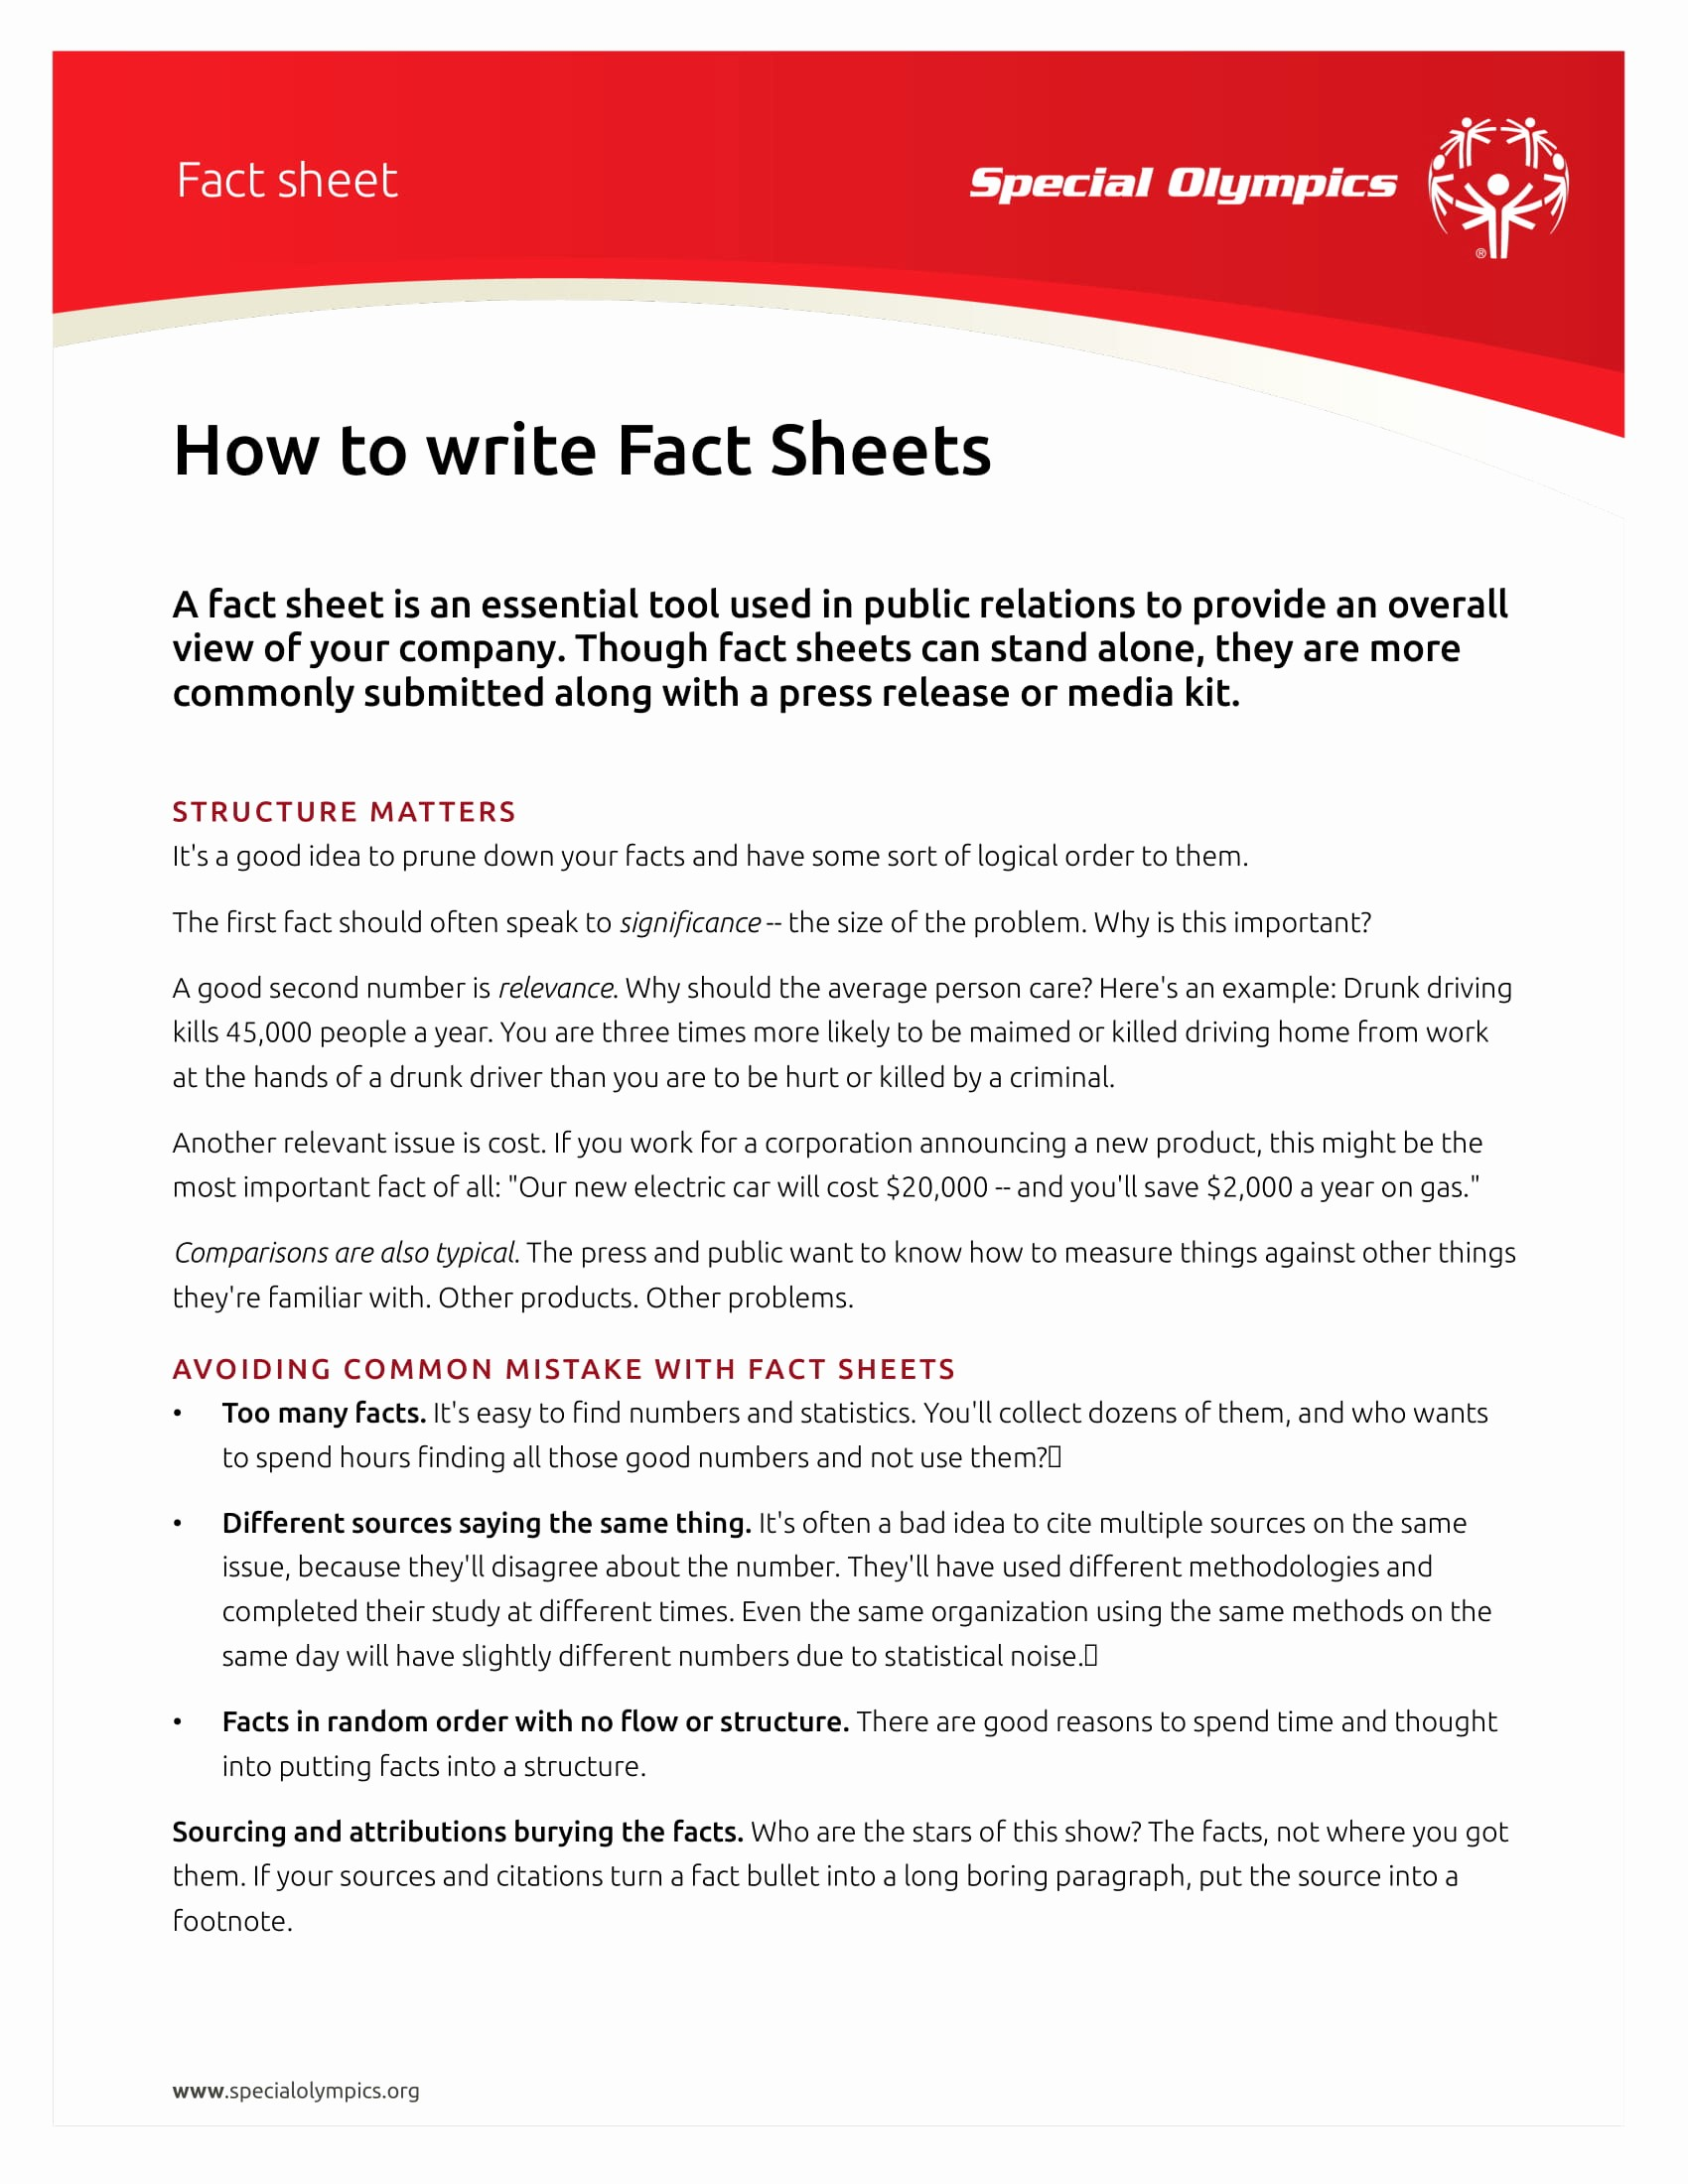 One Page Fact Sheet Template New 14 Fact Sheet Templates and Examples Pdf